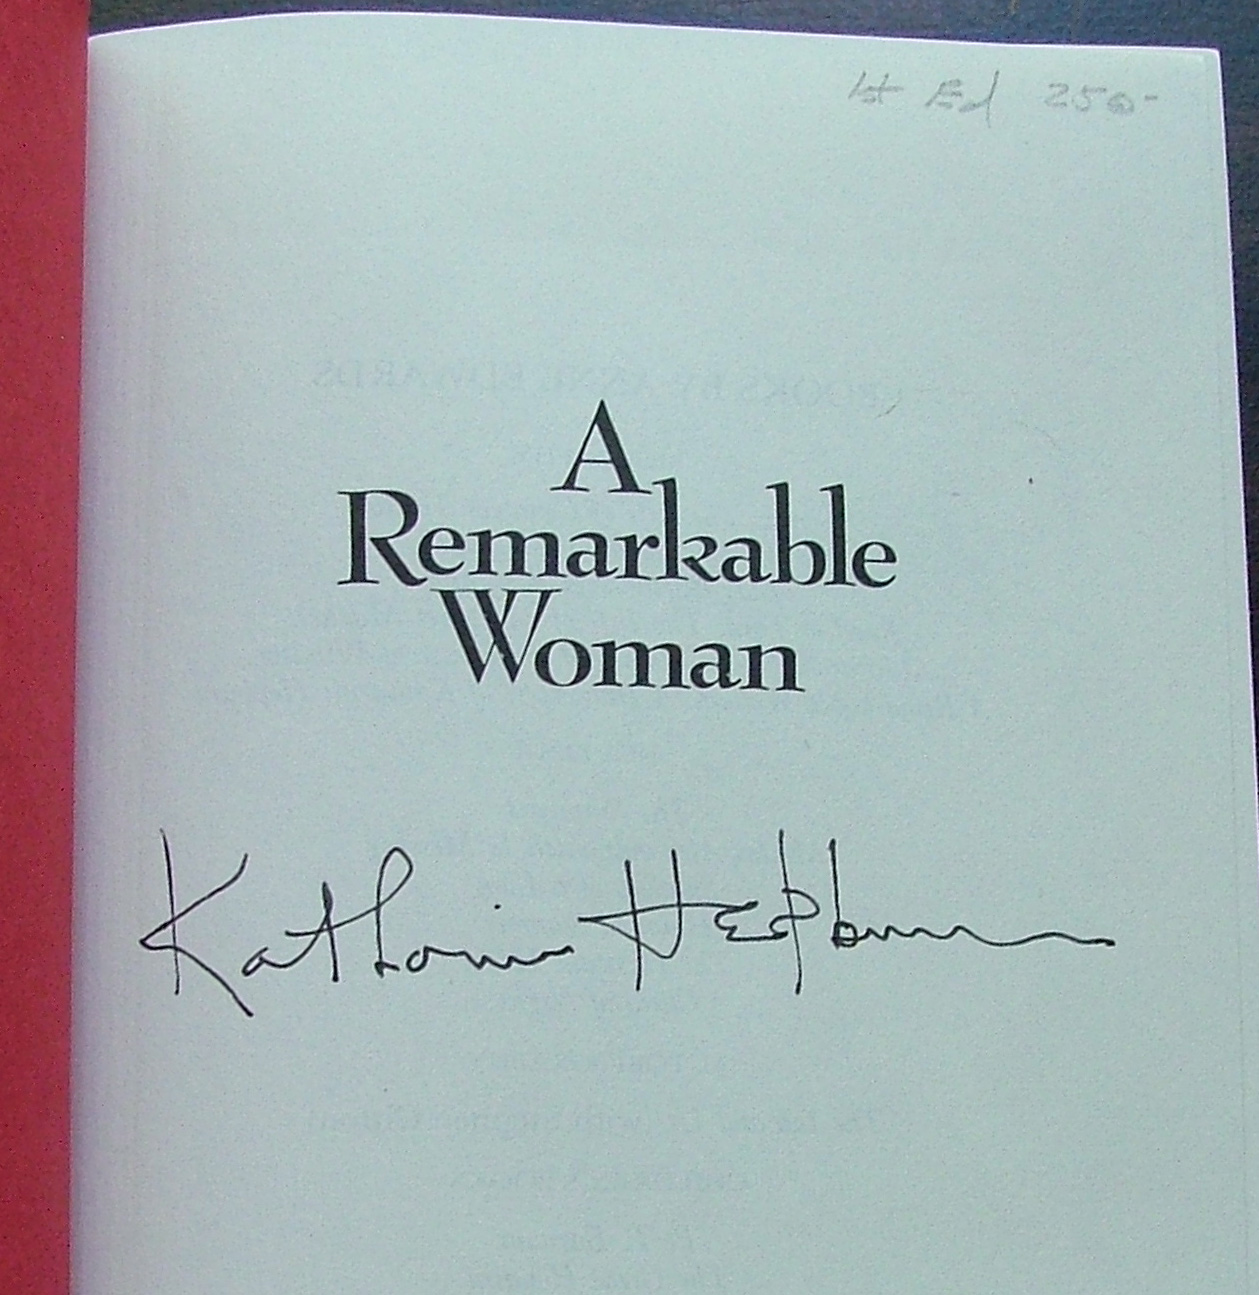 an introduction to the life and literature of katharine hepburn Literature religion & spirituality life can be wildly tragic at times (2018, february 1) 27 unforgettable katharine hepburn quotes.